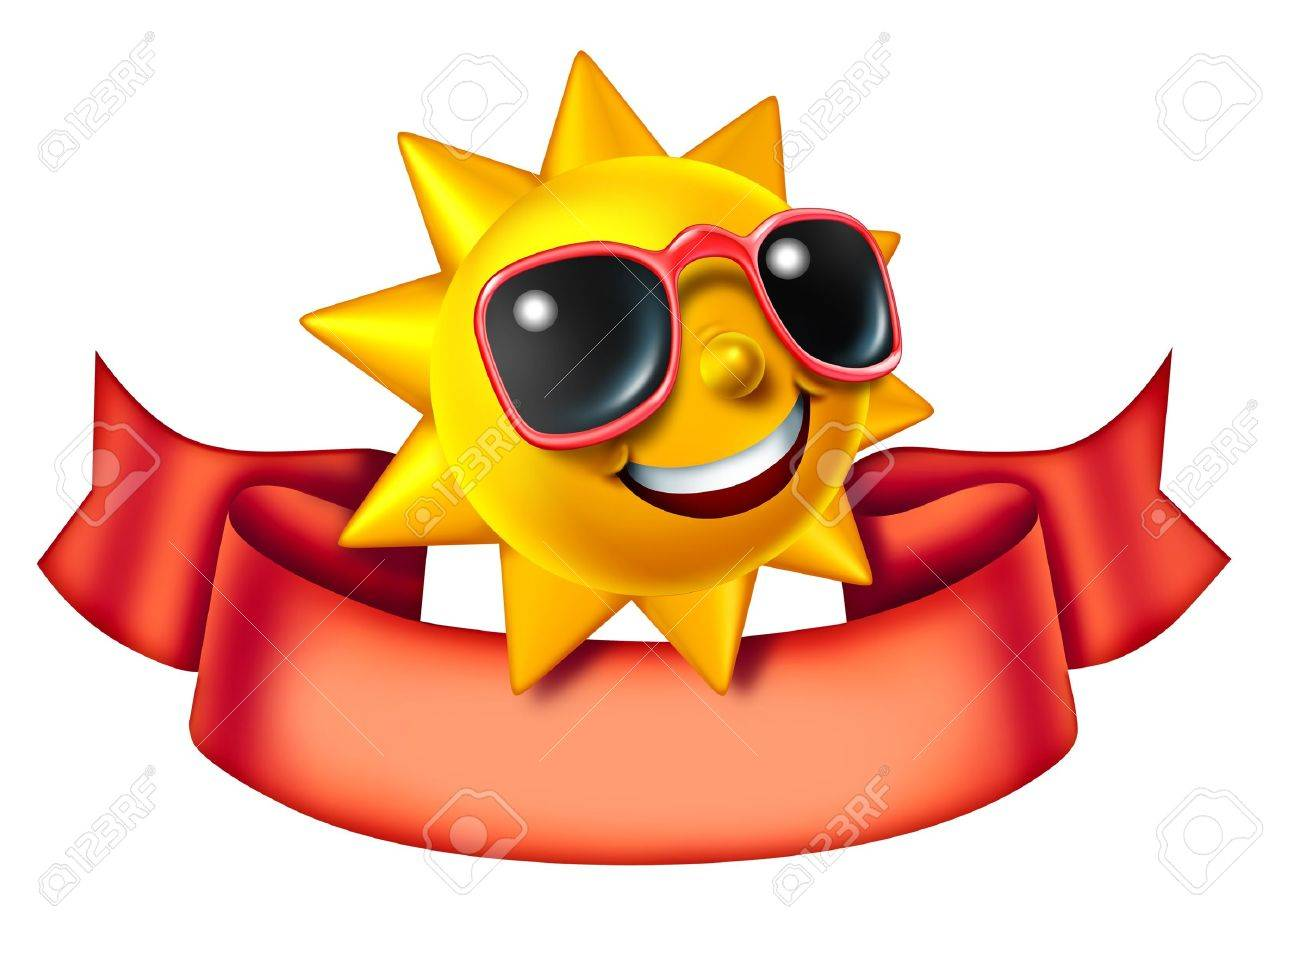 Sunny sun three dimensional cartoon character with a blank red banner as a hot summer symbol of heat and vacation advertisement or communication icon and relaxation isolated on a white background Stock Photo - 14571366